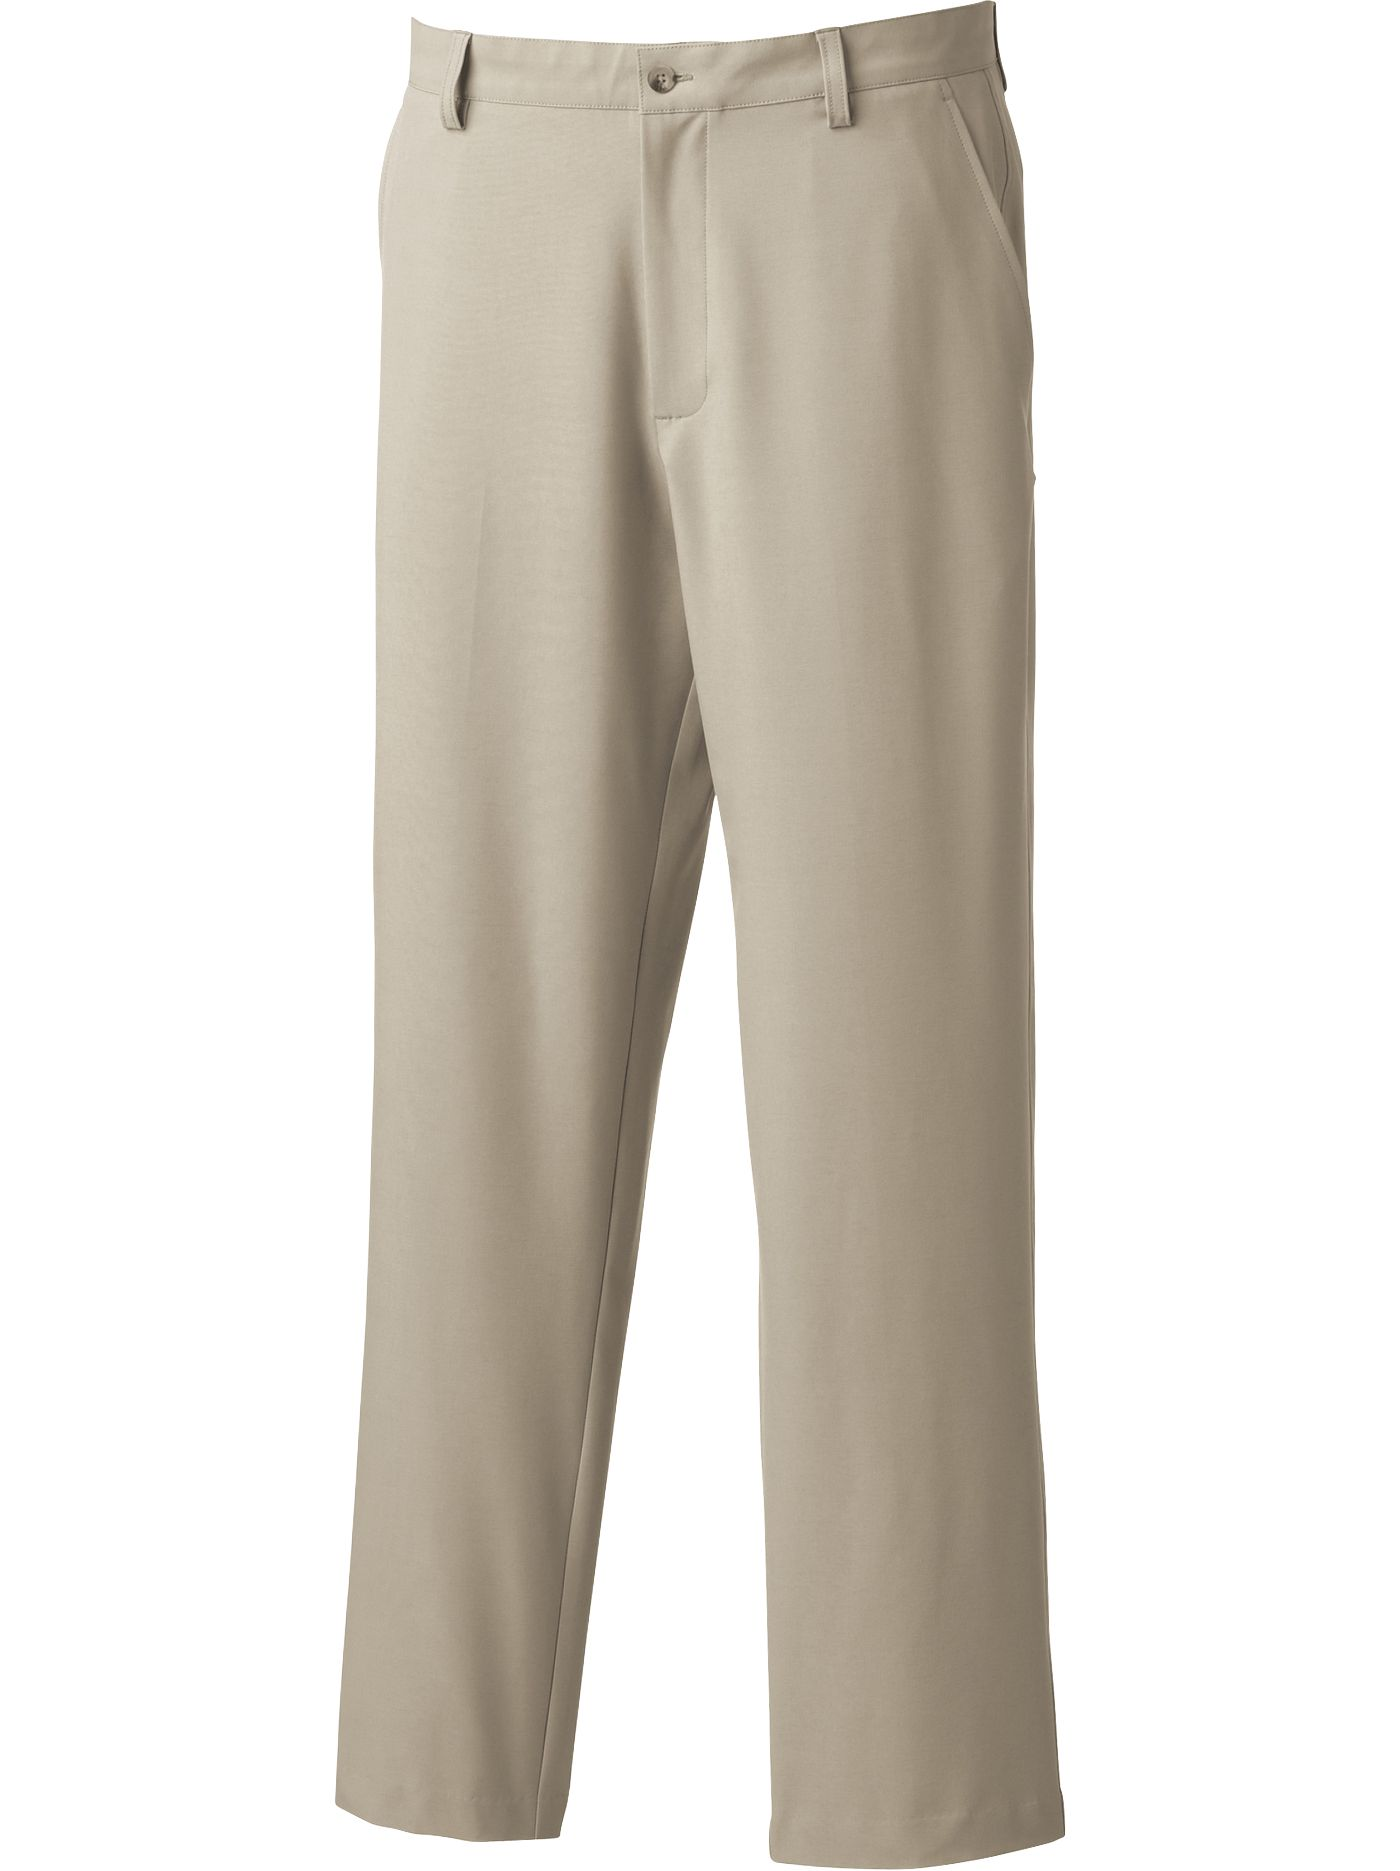 FootJoy Men's Performance Golf Pants